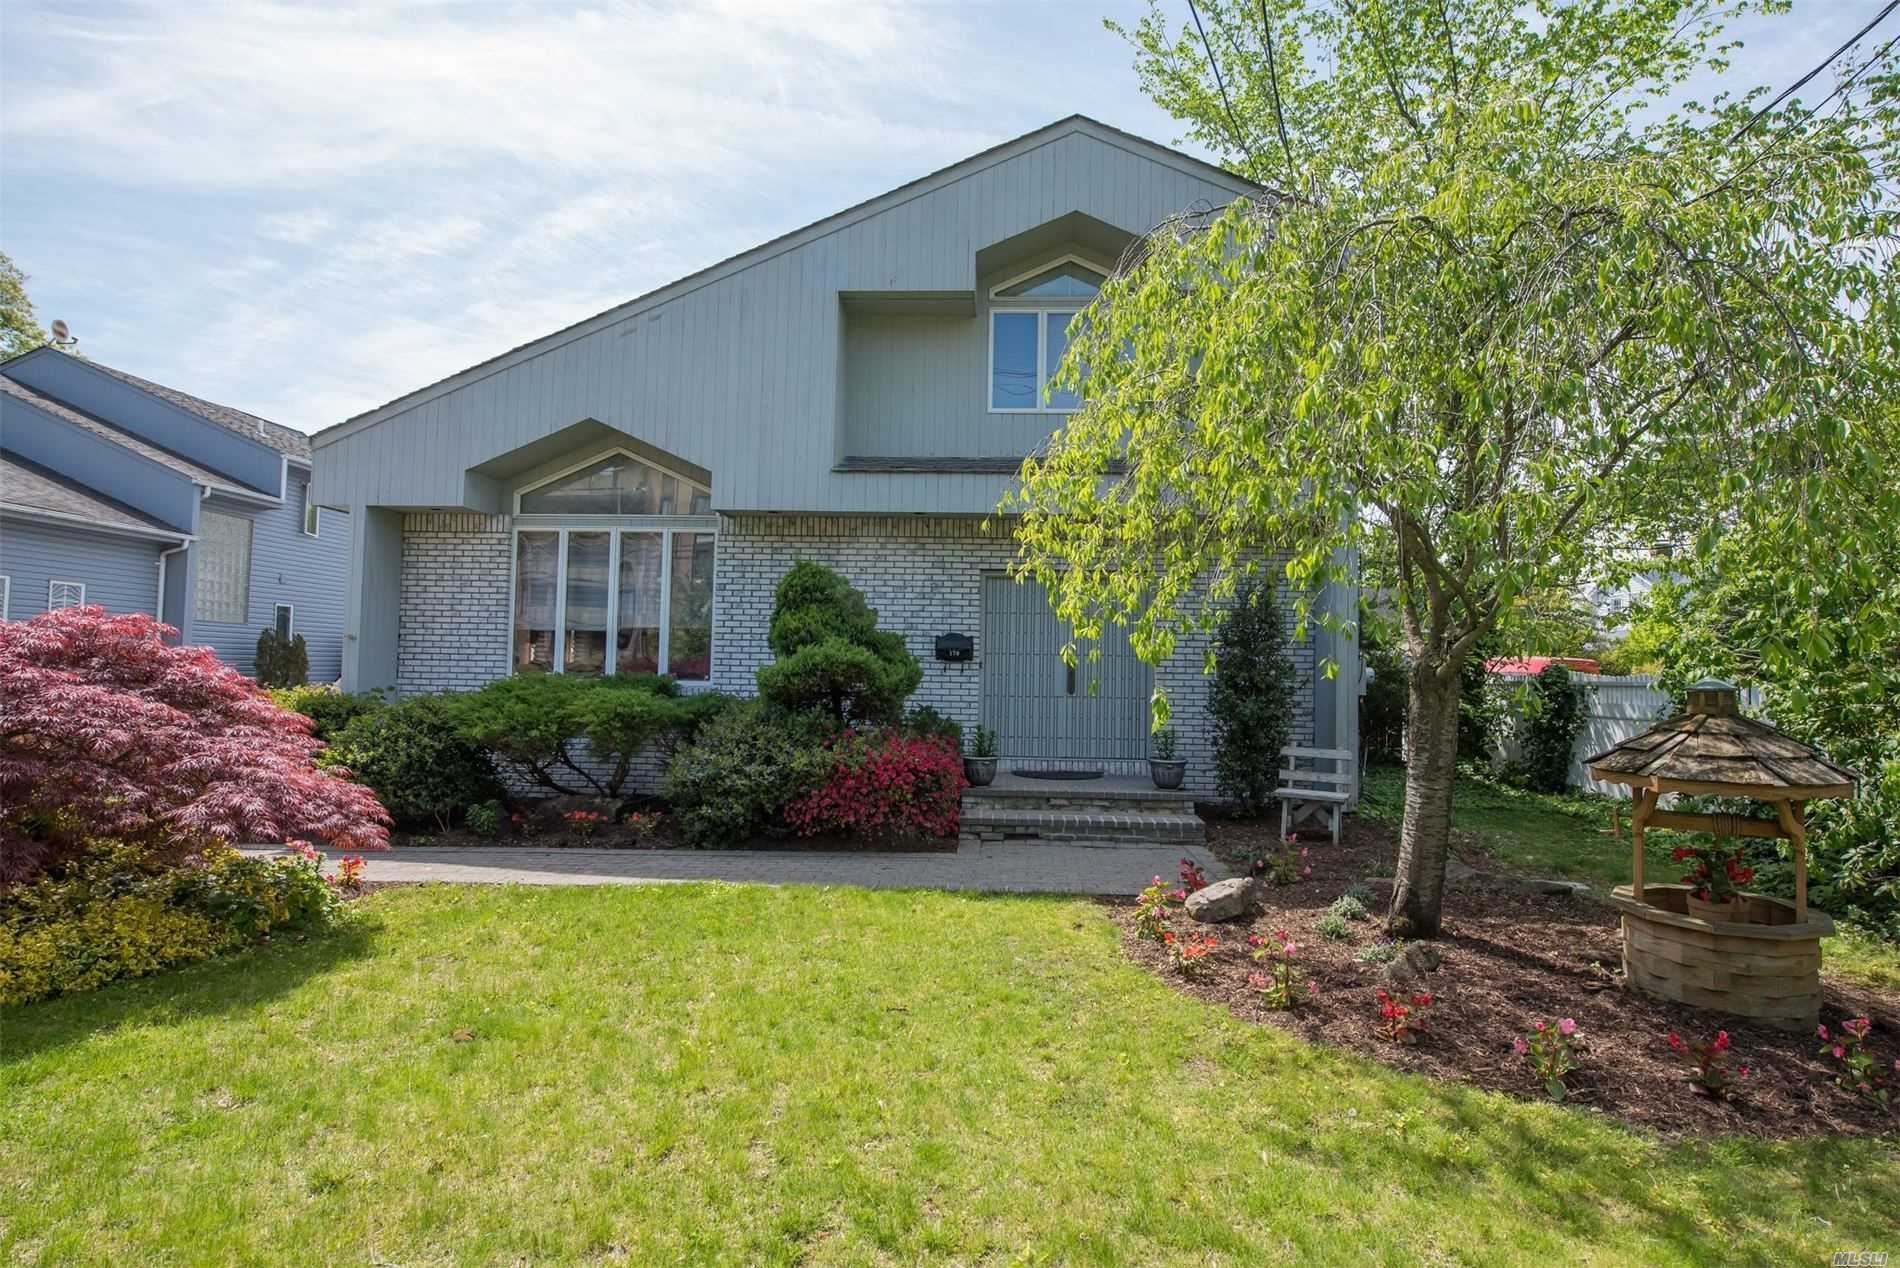 170 Maple Avenue, Westbury, NY 11590 - MLS#: 3219193